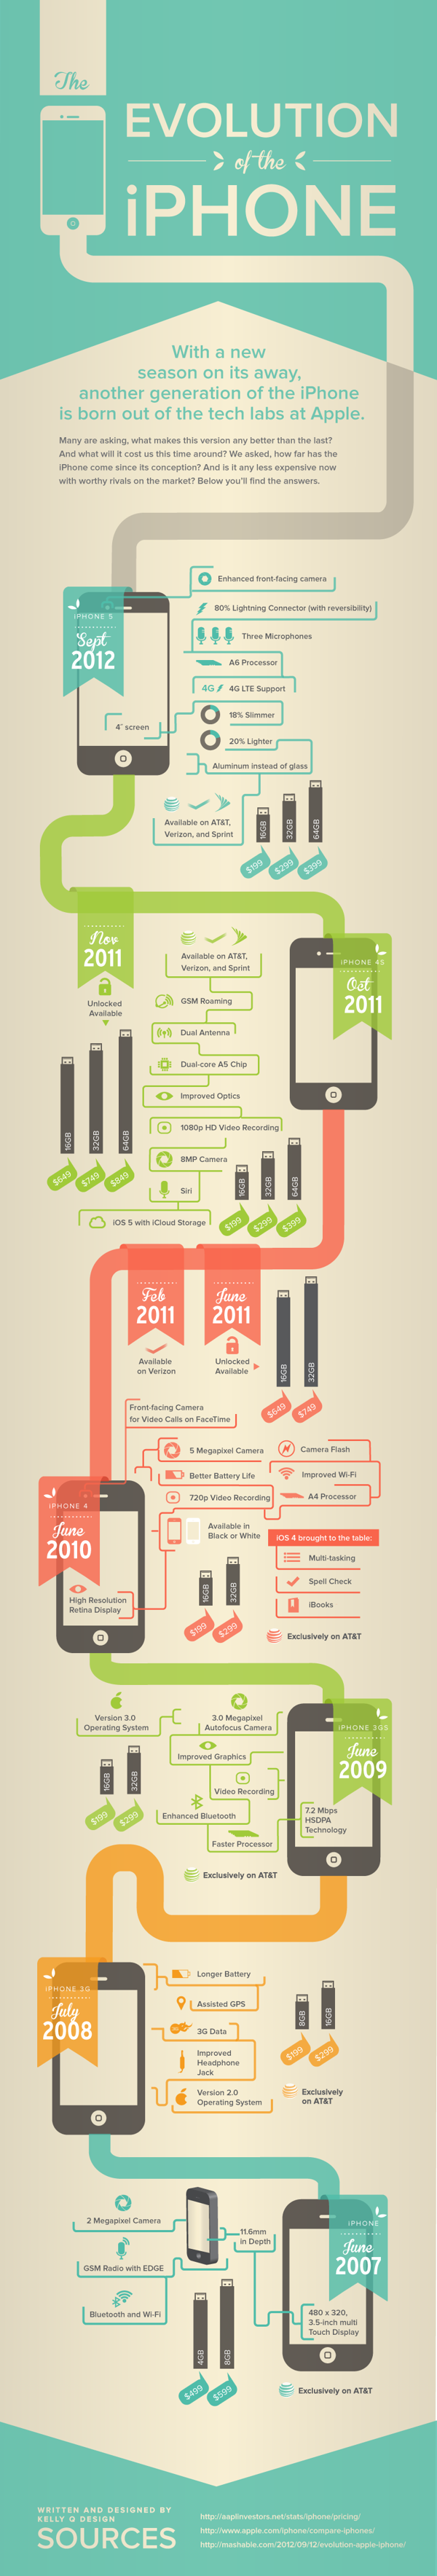 Evolution of the iPhone #infographic